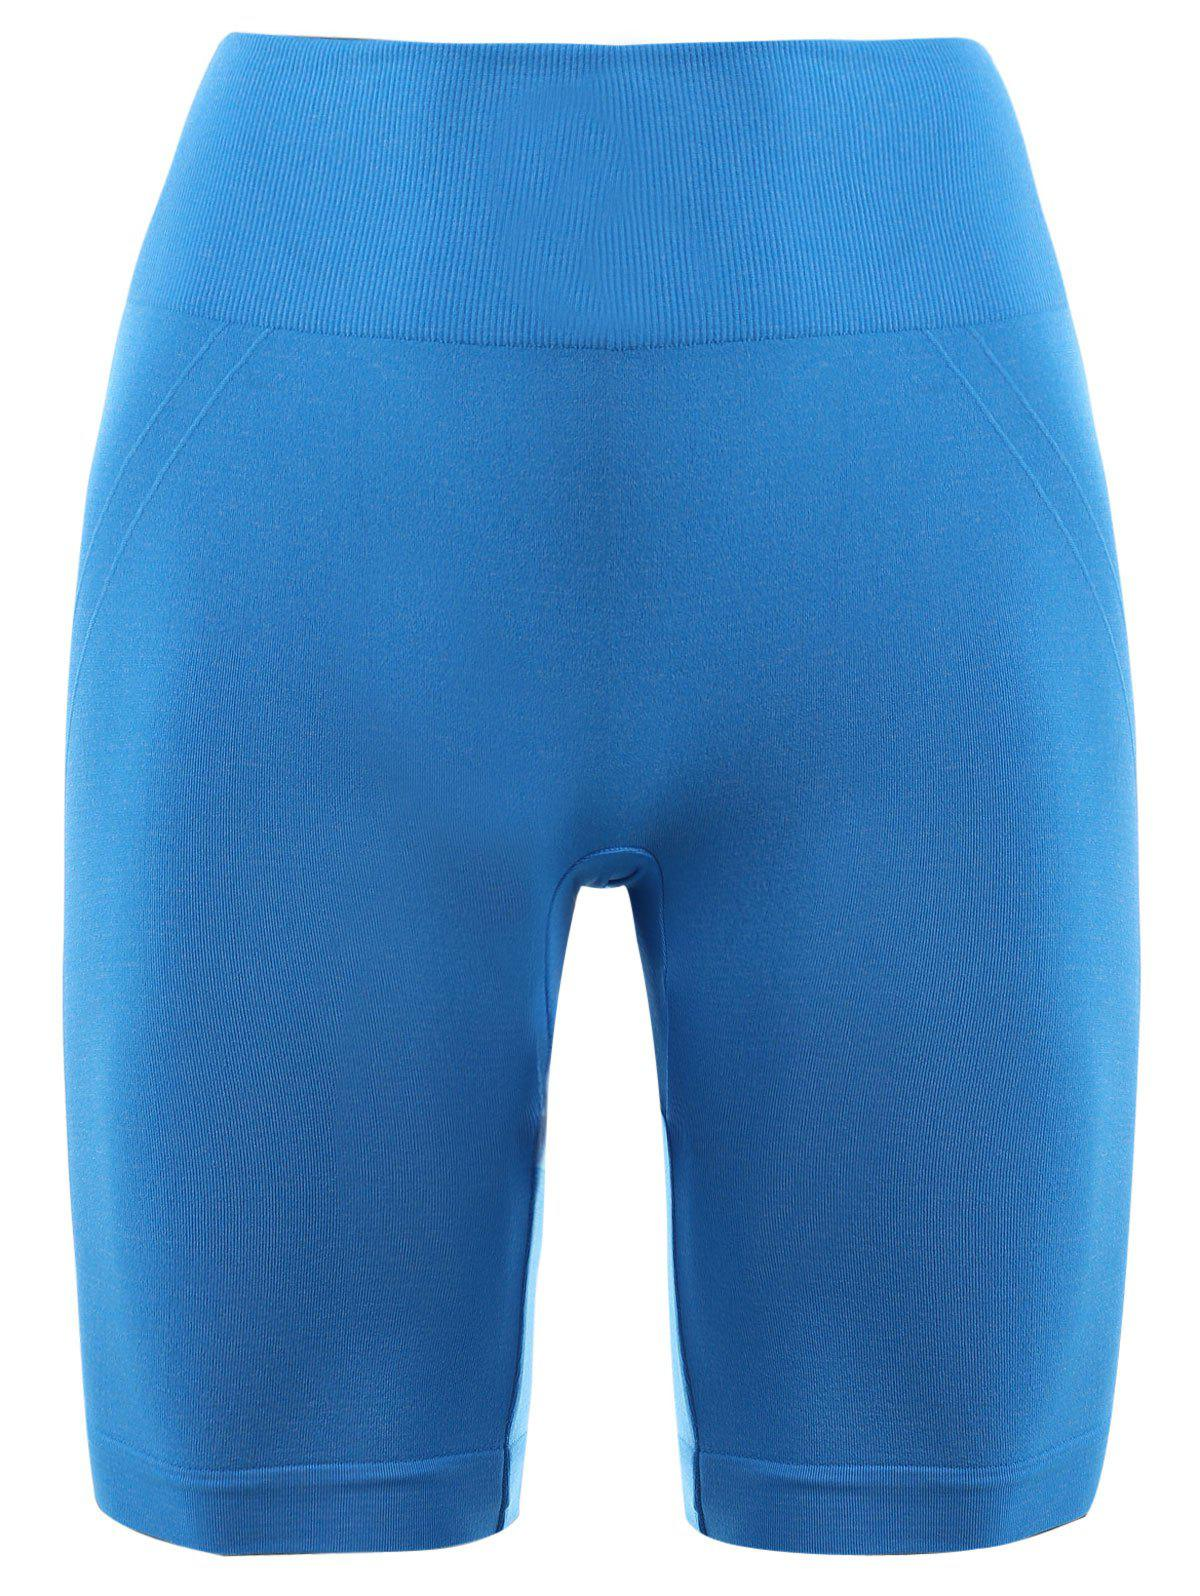 Shops Skinny Sports Running Shorts